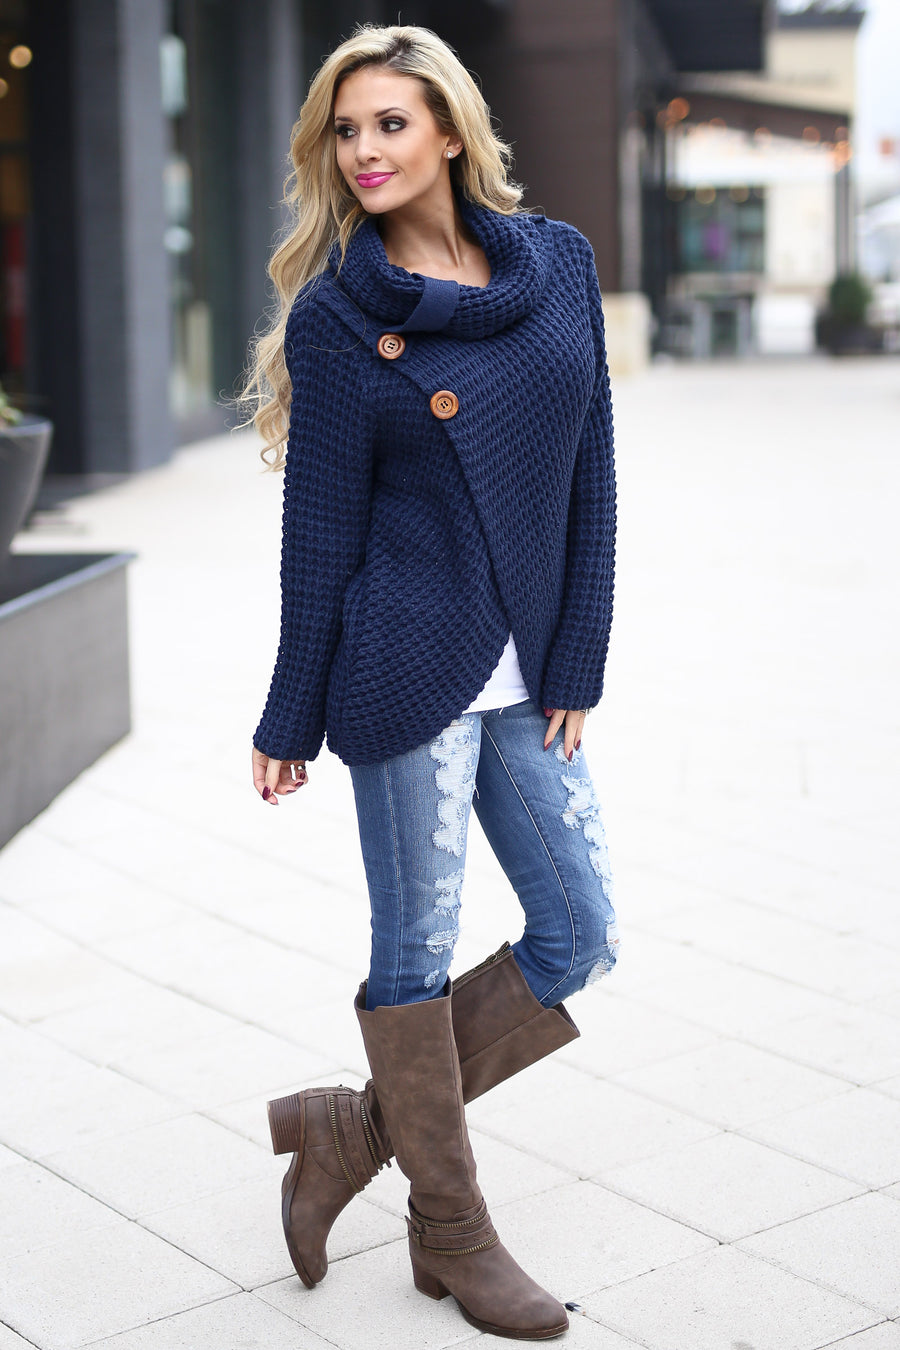 All Wrapped Up Sweater - Navy knit wrap sweater with collar and buttons, Closet Candy Boutique 1